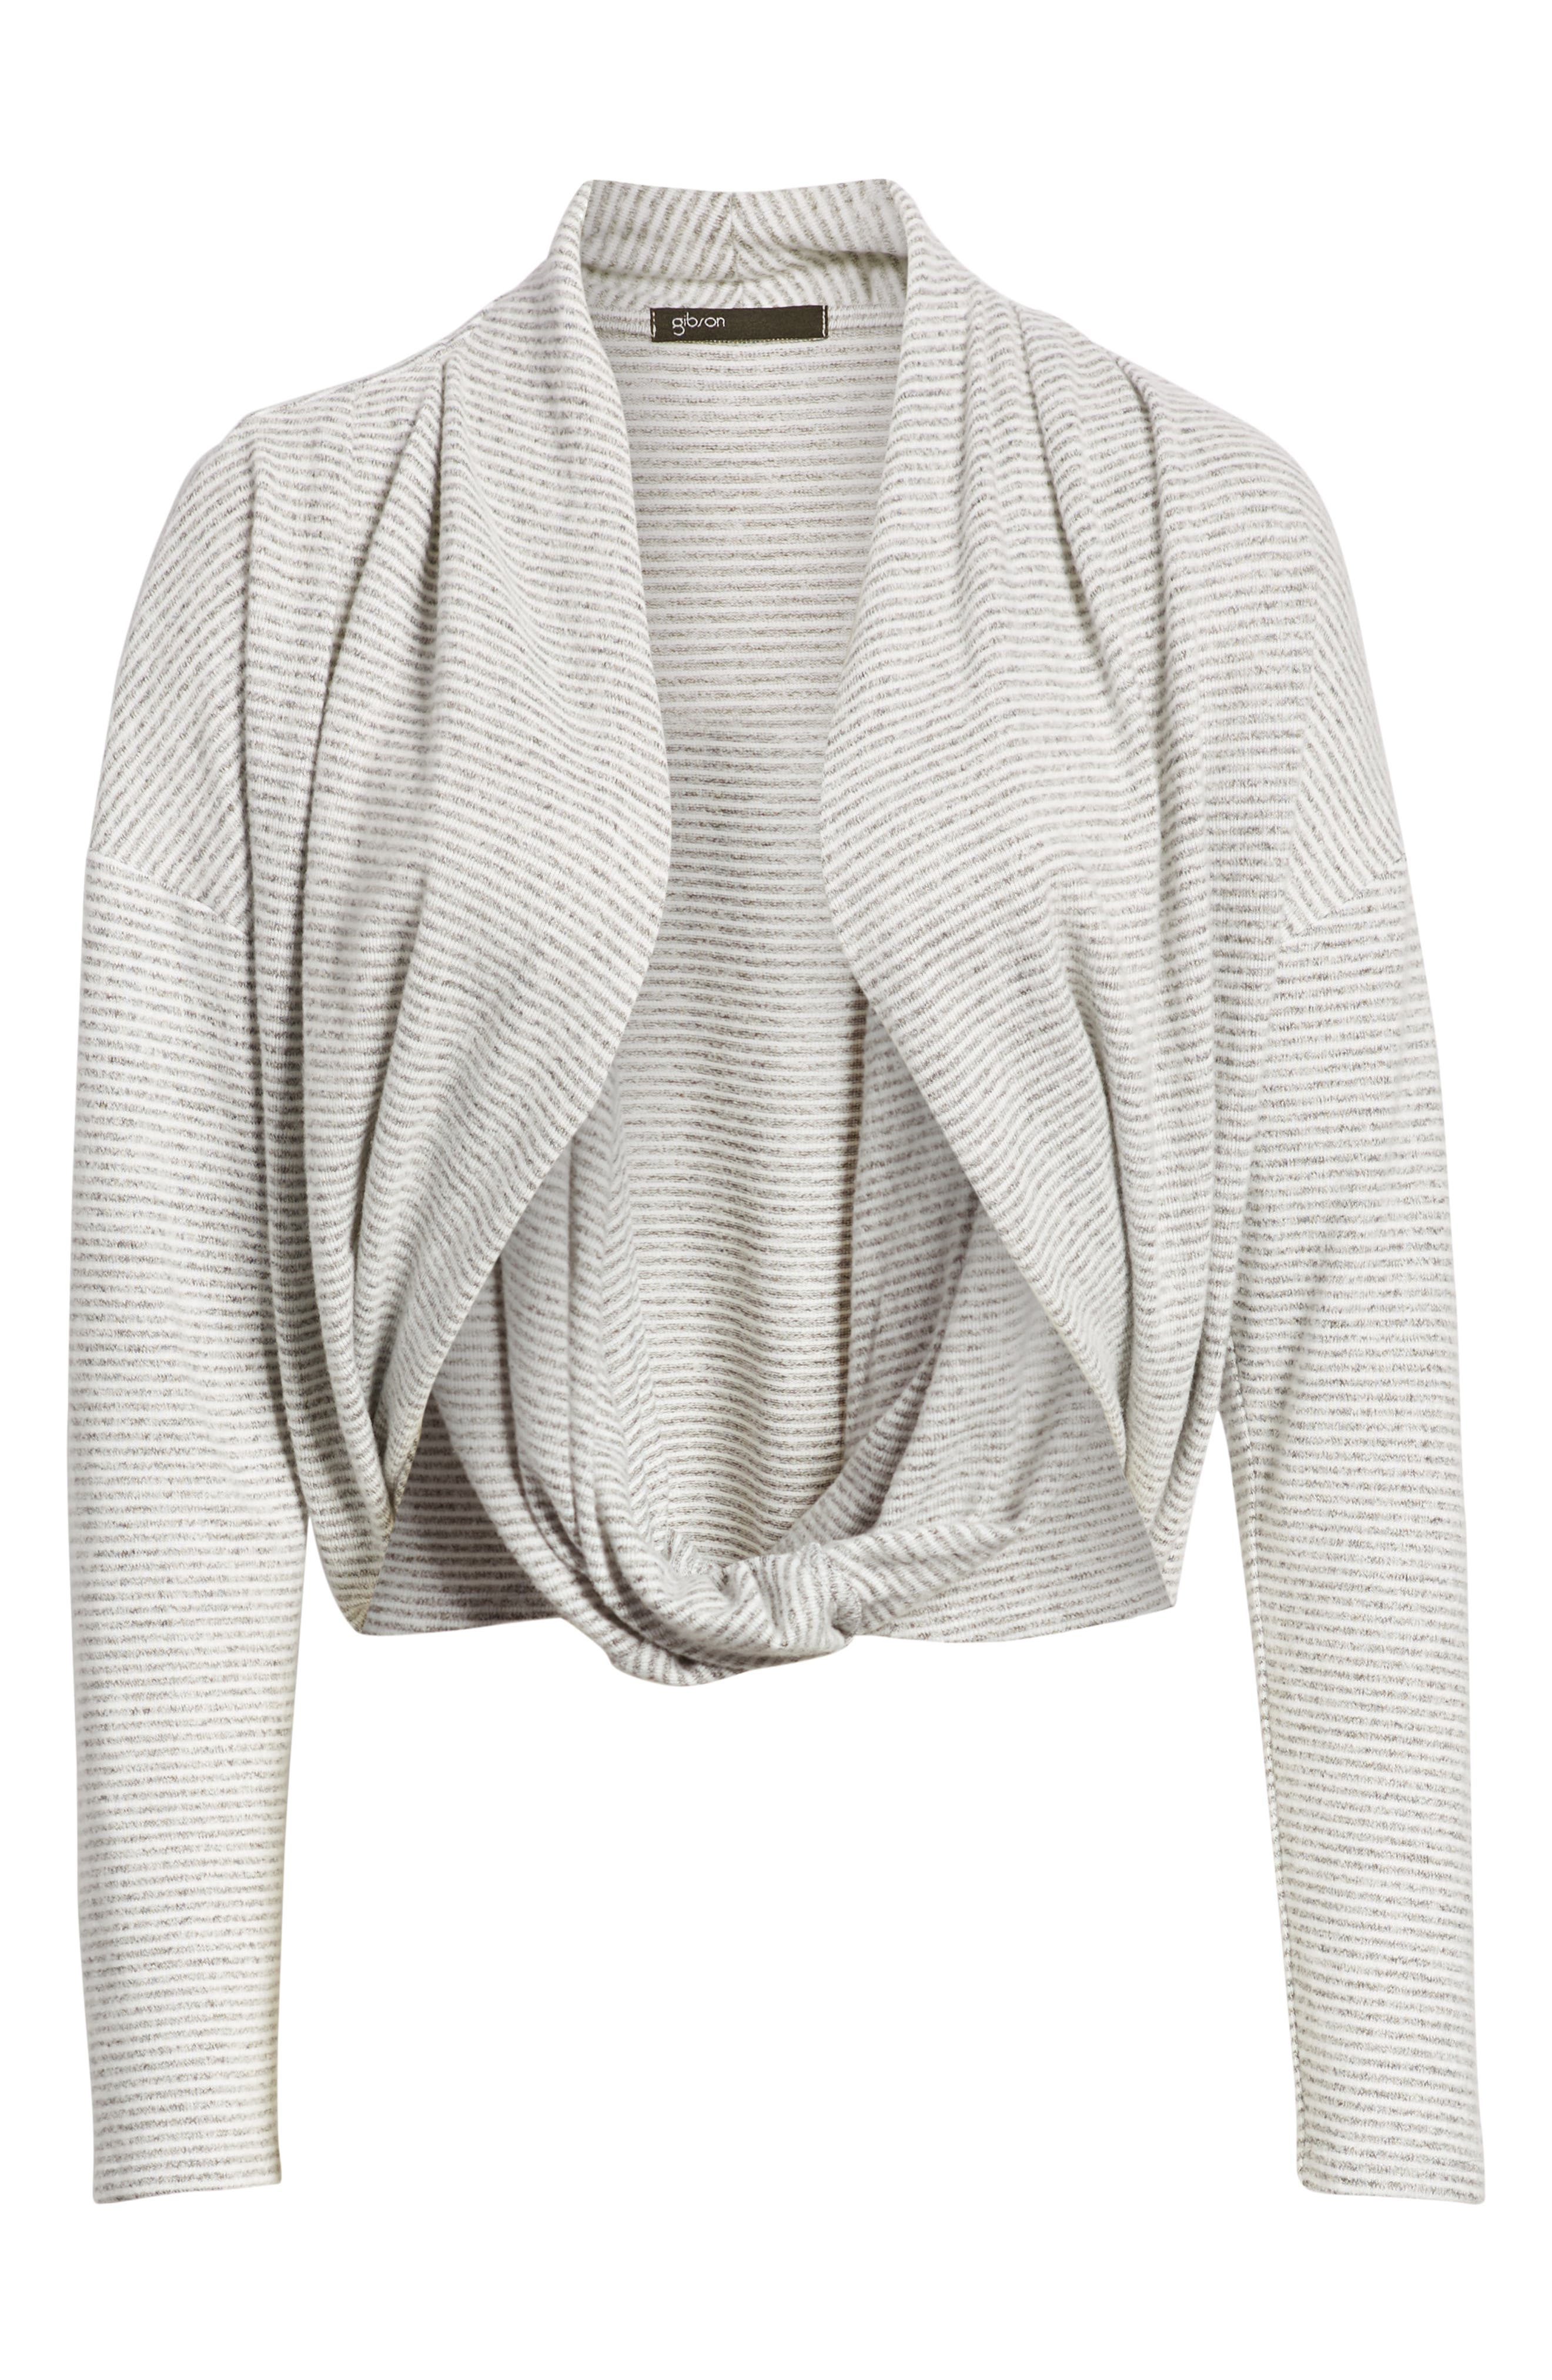 GIBSON,                             x Living in Yellow Diana Cozy Knit Wrap Top,                             Alternate thumbnail 6, color,                             GREY/ IVORY